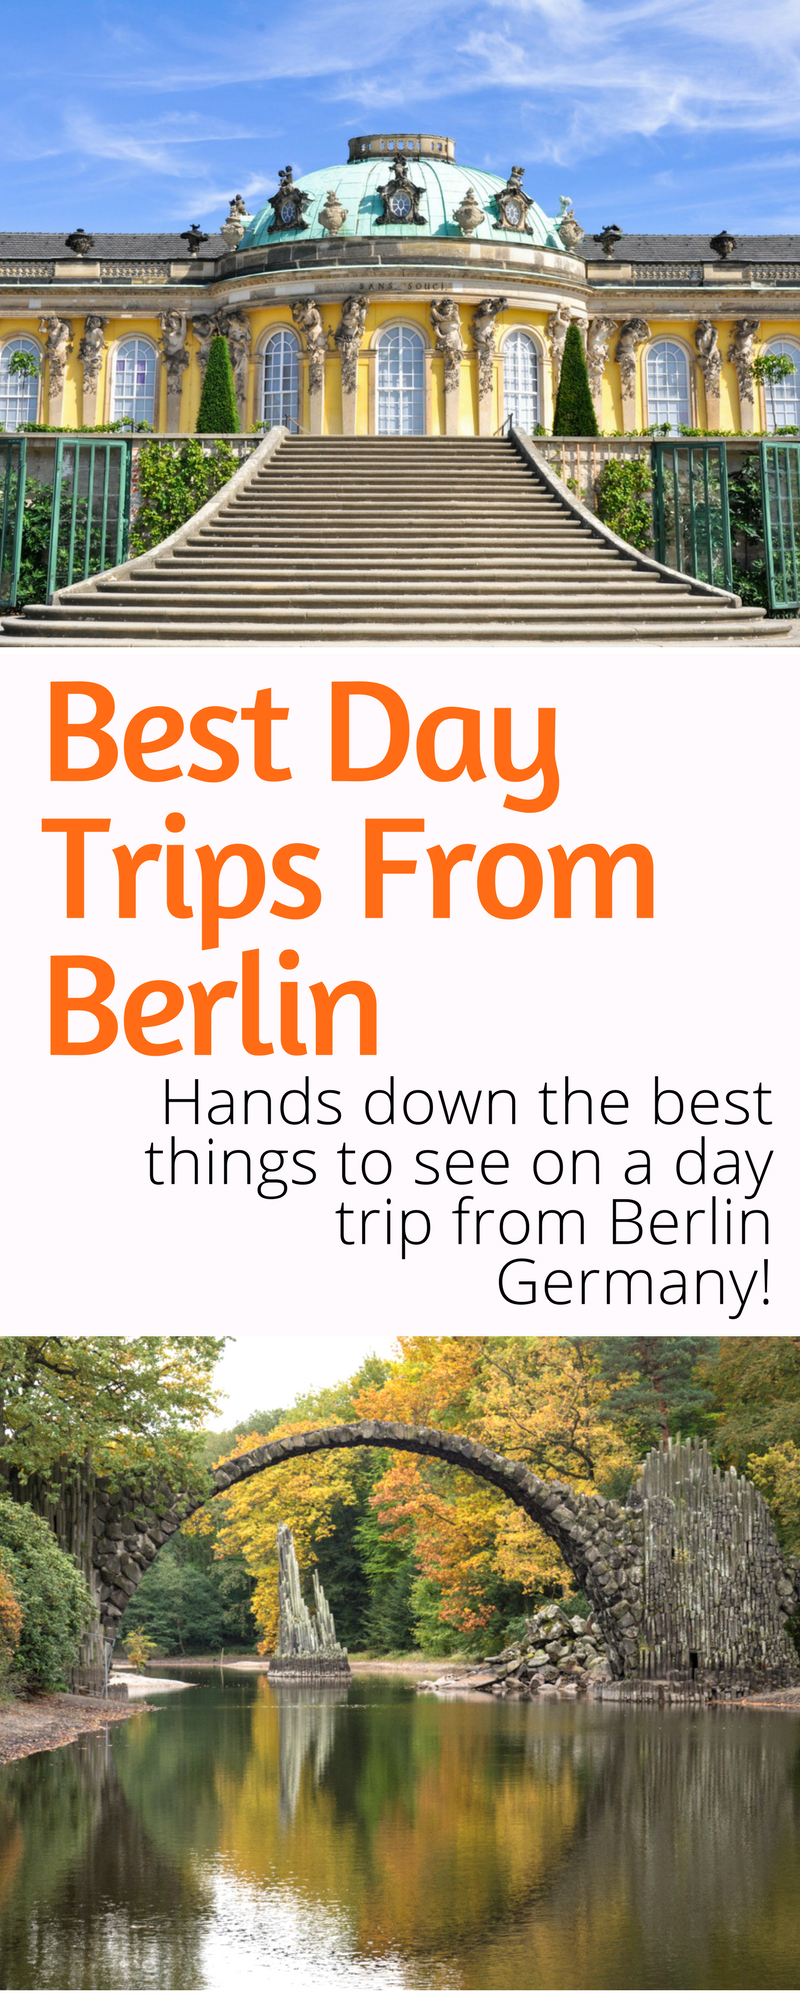 What Are the Best Day Trips From Berlin? - Explore Germany